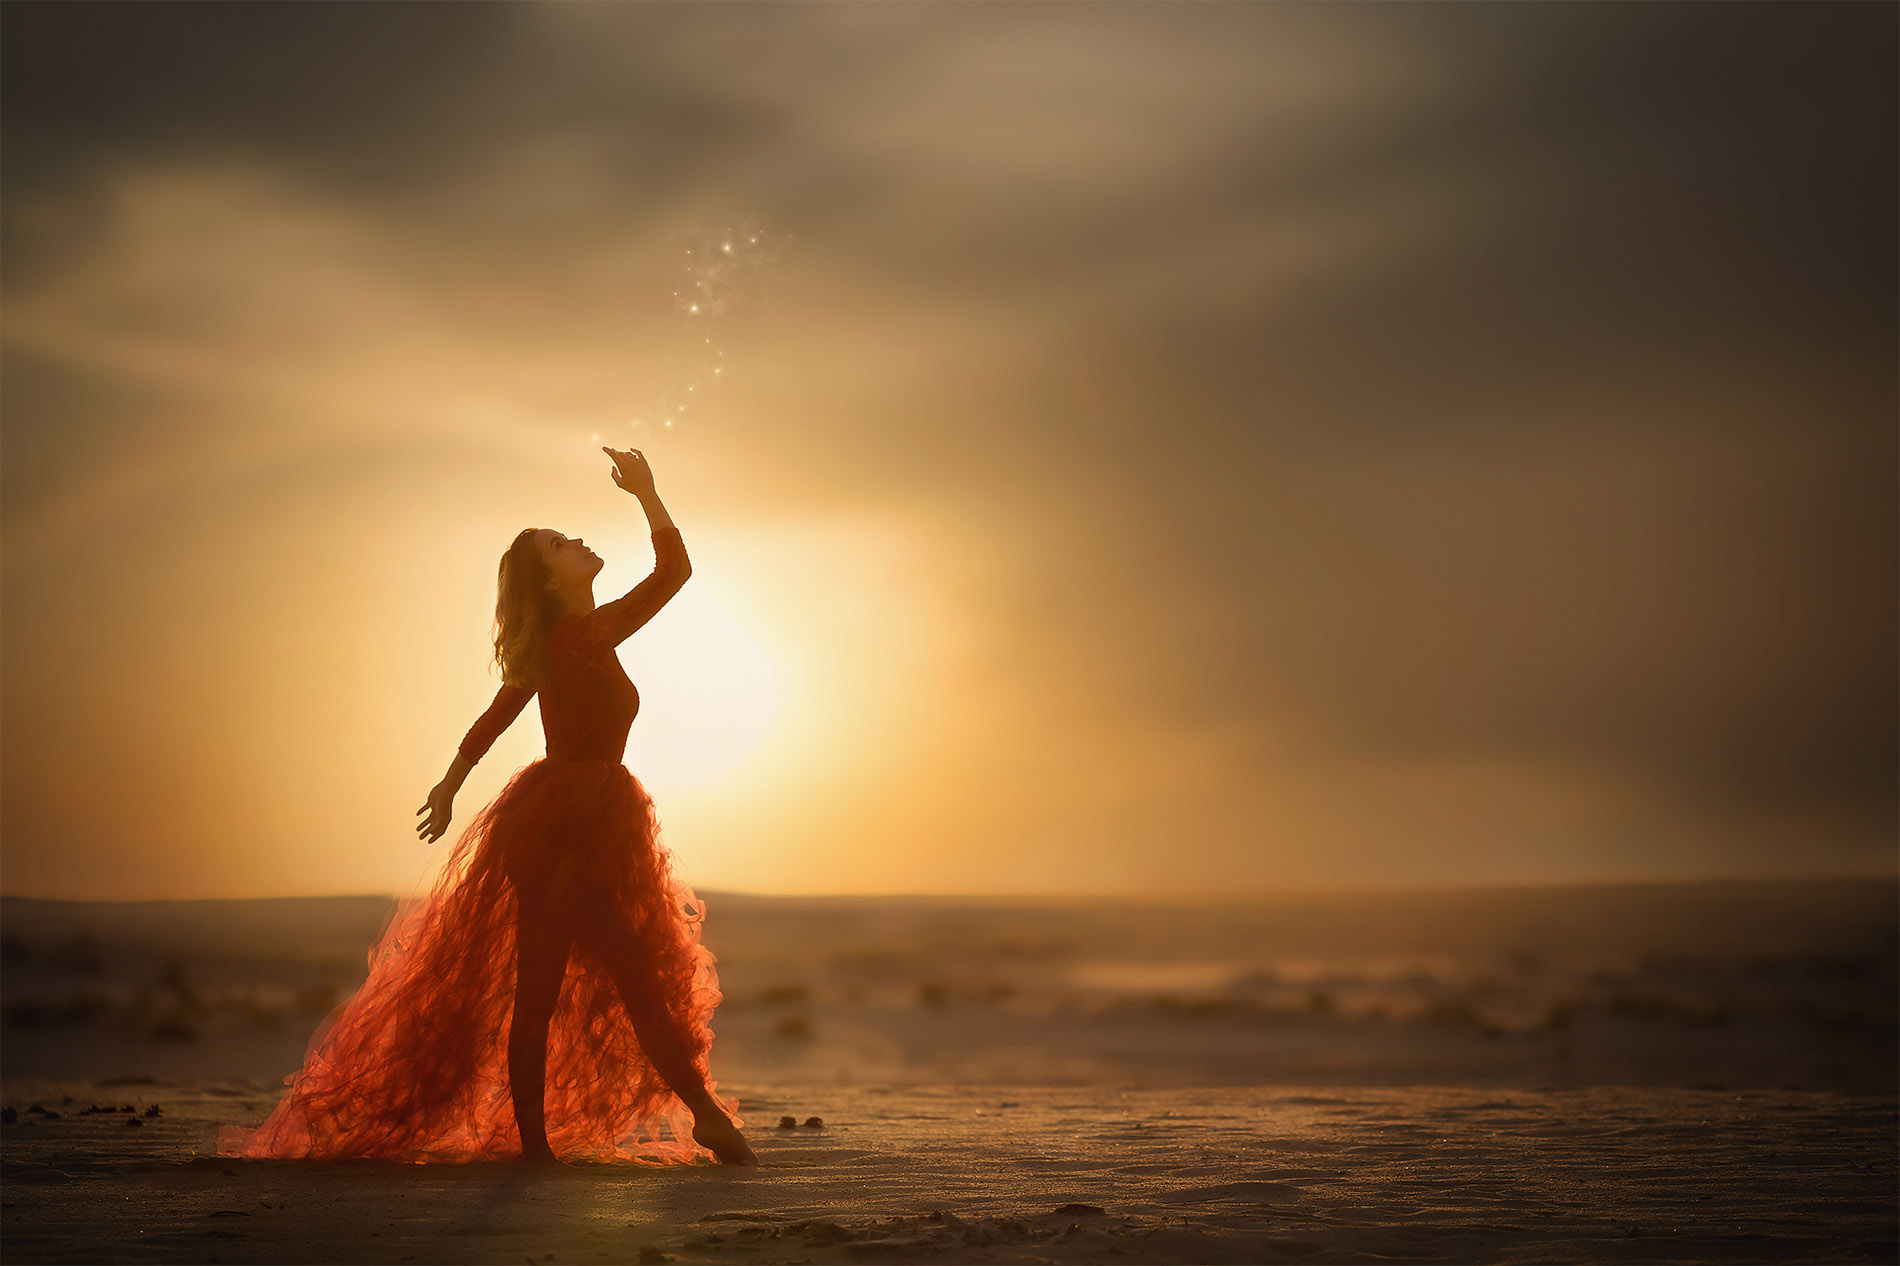 Dreamy canon image of a woman dressed up like a fairy in a red dress playing with magic fire flies in the desert during sunset by Willie Kers copy